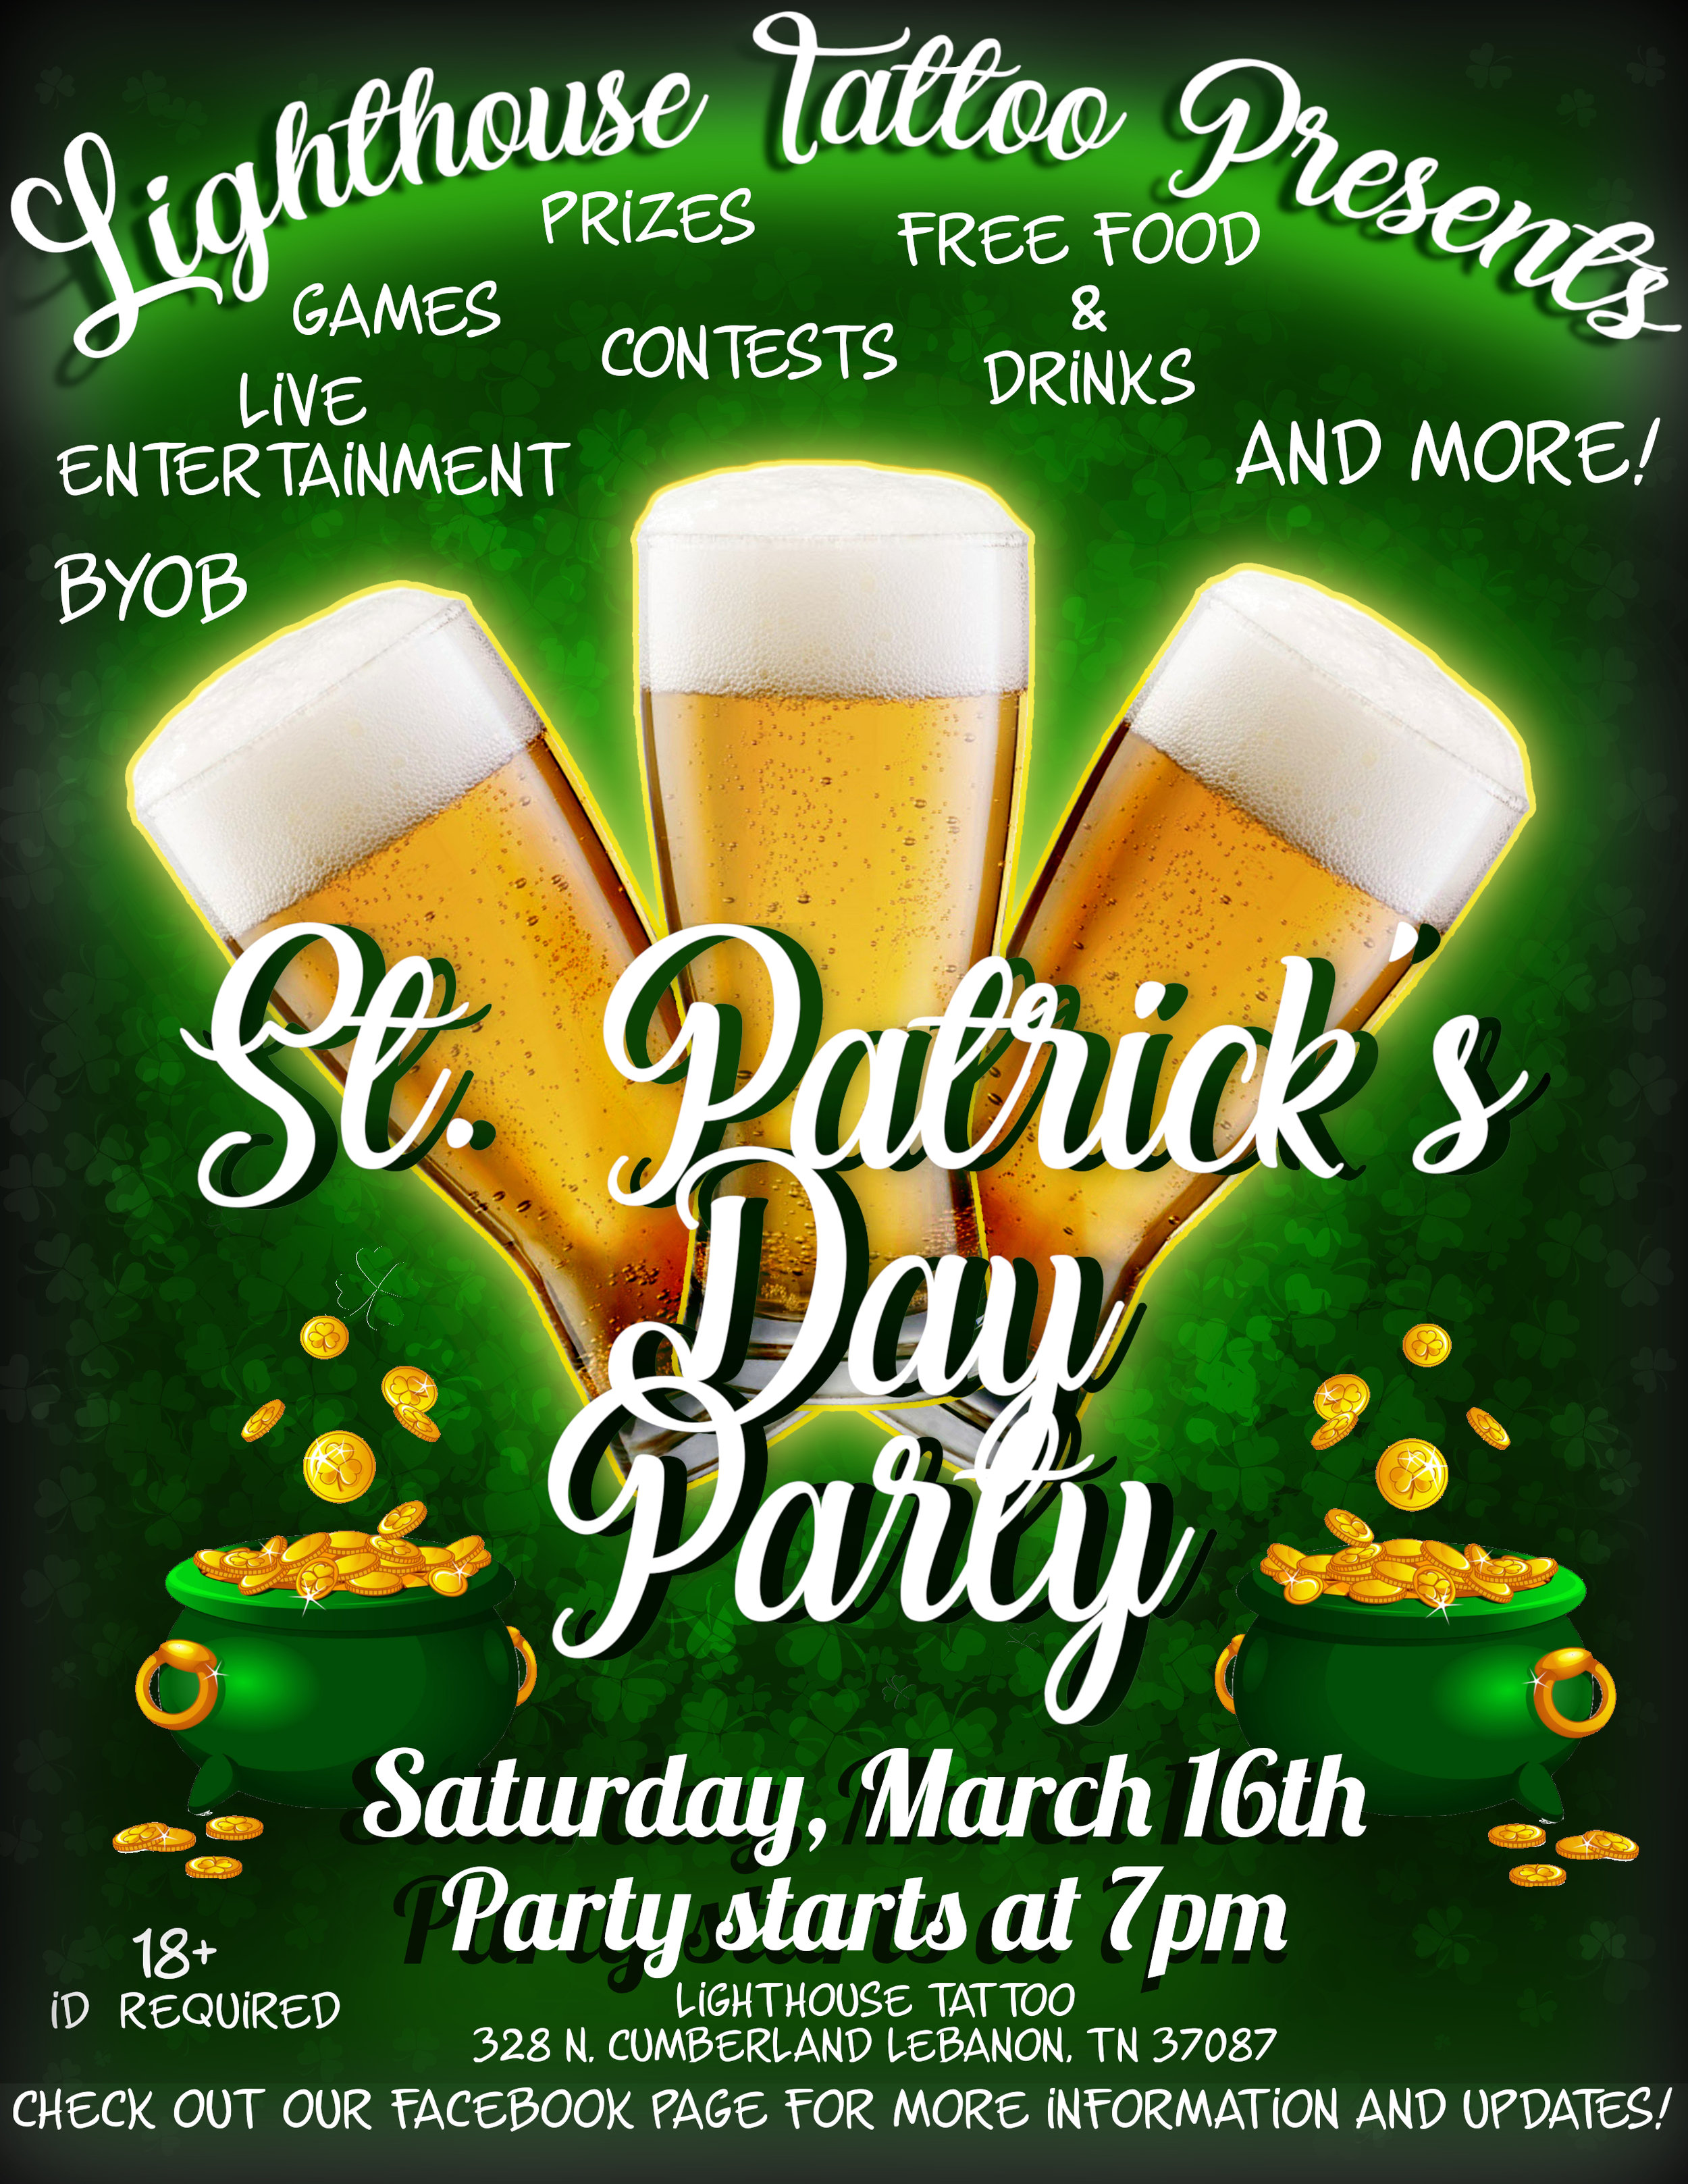 It's time to start getting ready for our 2019 St. Patrick's Day bash. Last year's party was a huge success, so now we're coming back even stronger this year.   18+ Only event (we will have someone checking for IDs)   including:   Free Food Free GREEN Beer Live Entertainment Costume Contest Beer Drinking Contest AND MORE  Party starts at 7pm and goes on until we get tired!! Check out our Facebook page for updates on this event as we book more stuff!     https://www.facebook.com/pages/category/Tattoo---Piercing-Shop/Lighthouse-Tattoo-1731394500499084/